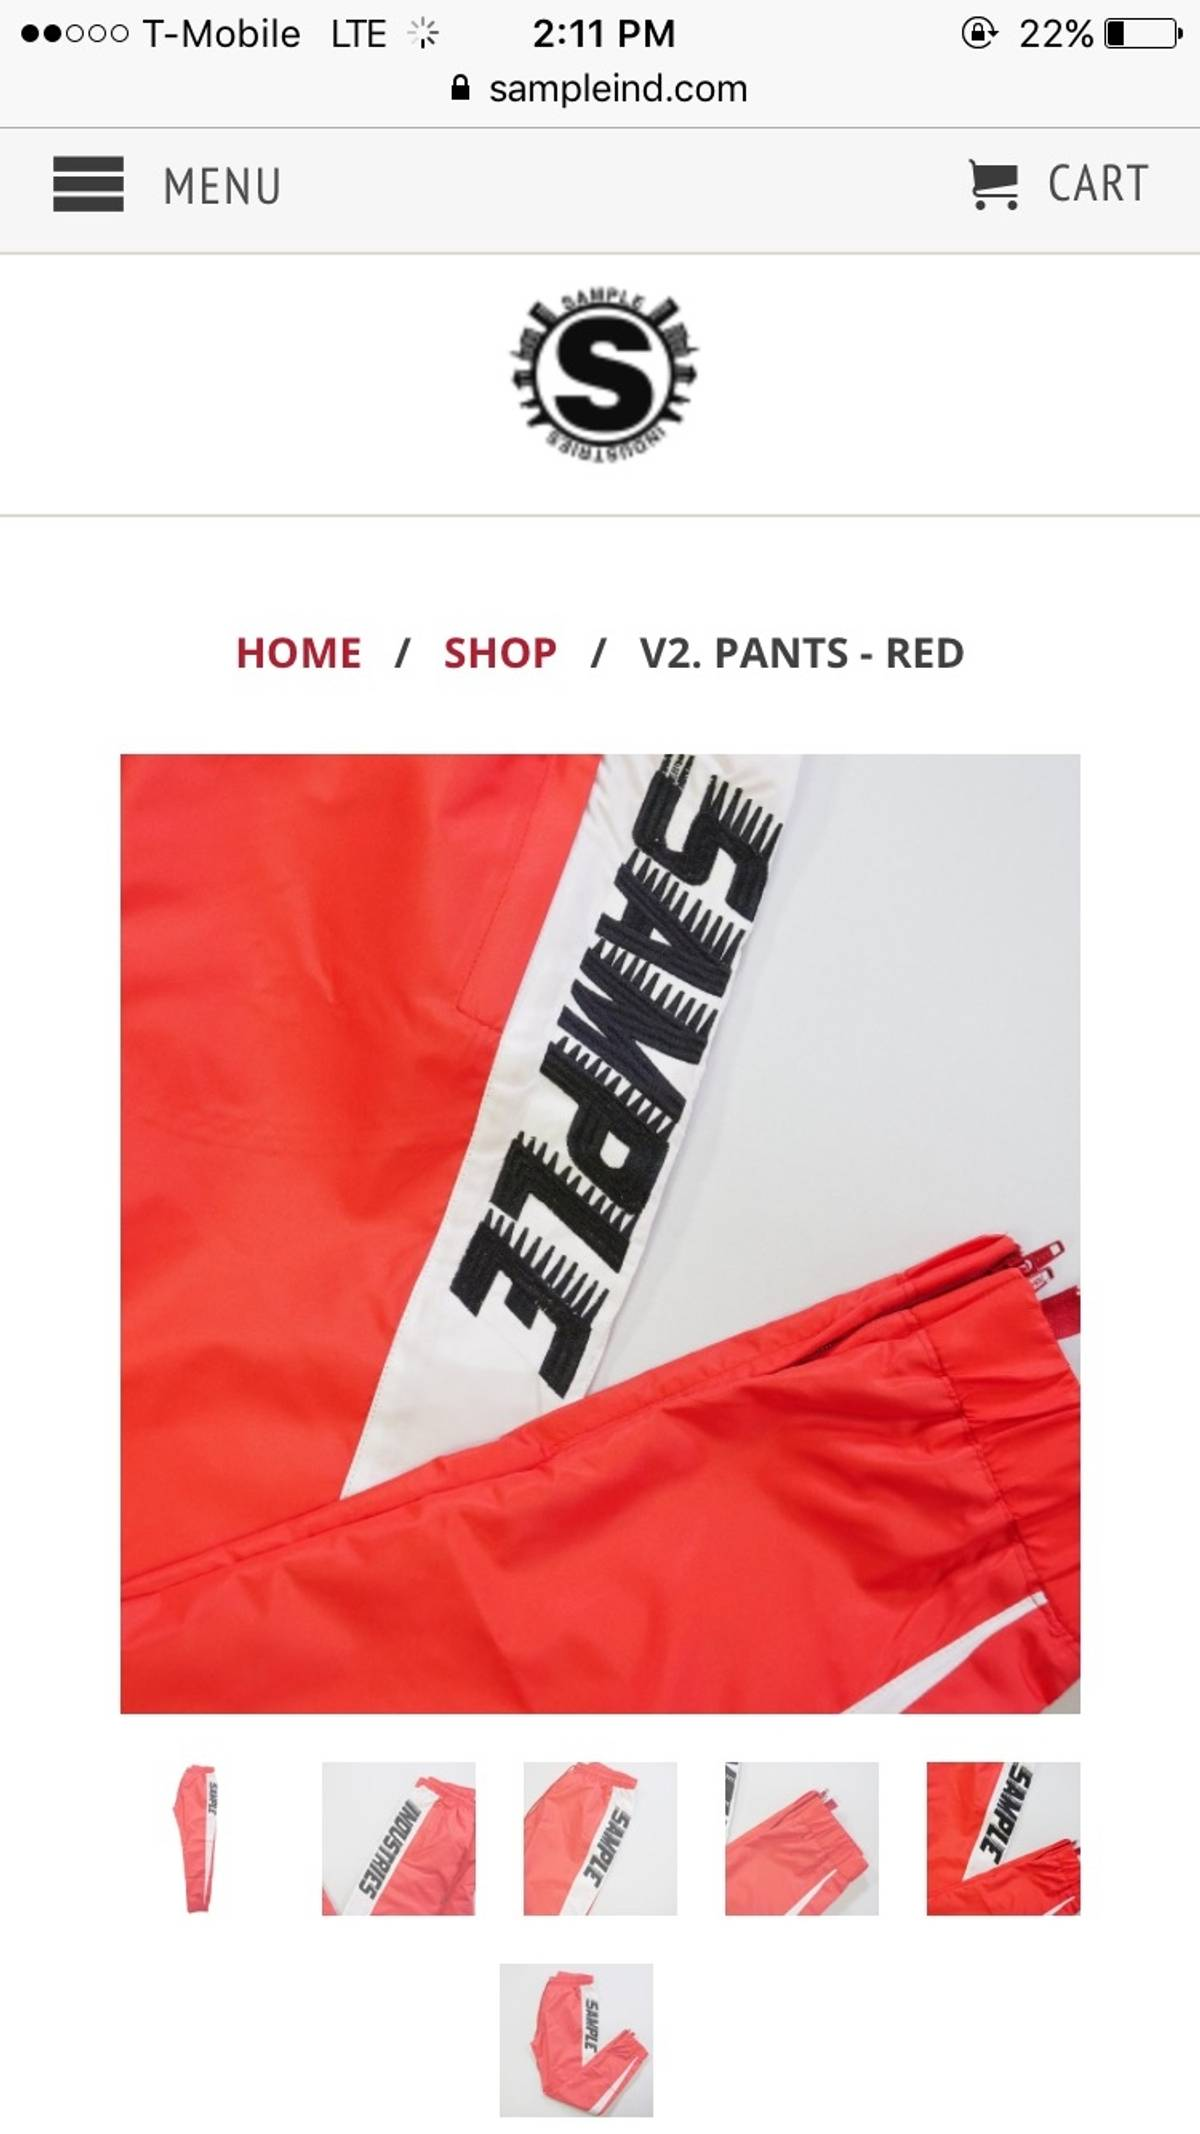 Sample Industries V2 Pants Red Size 30